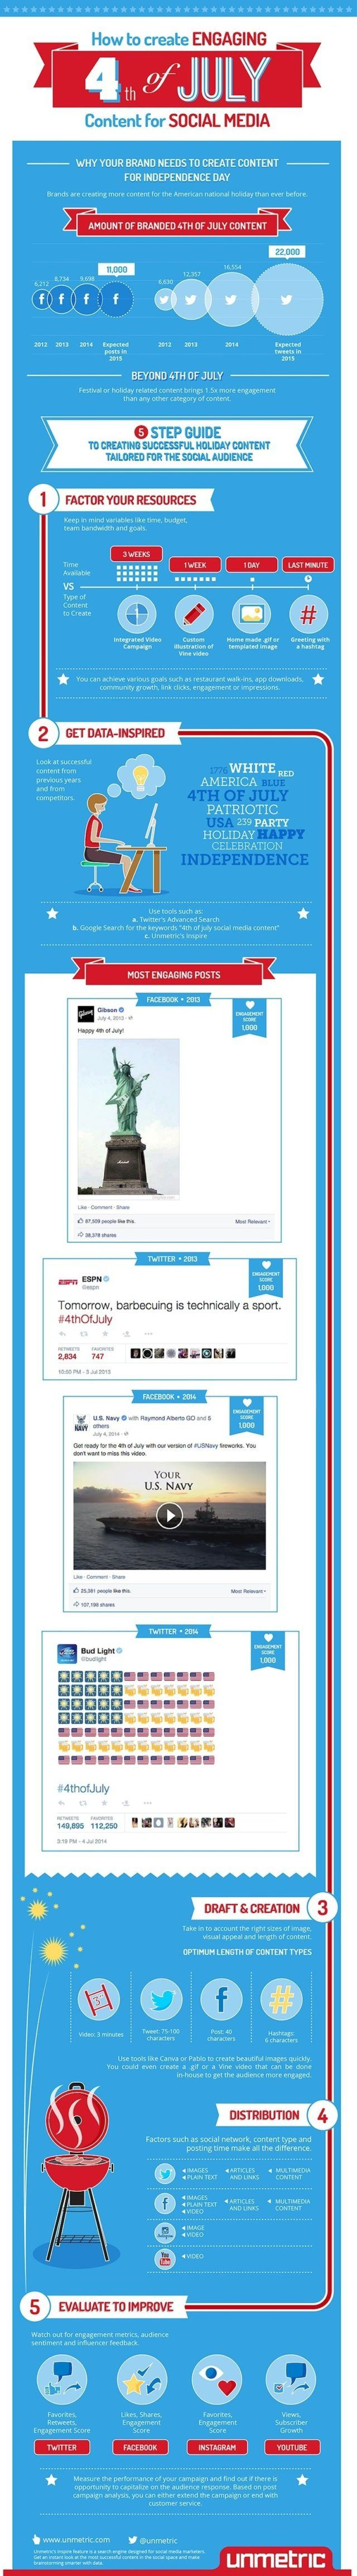 4th of July Content and Social Marketing Ideas